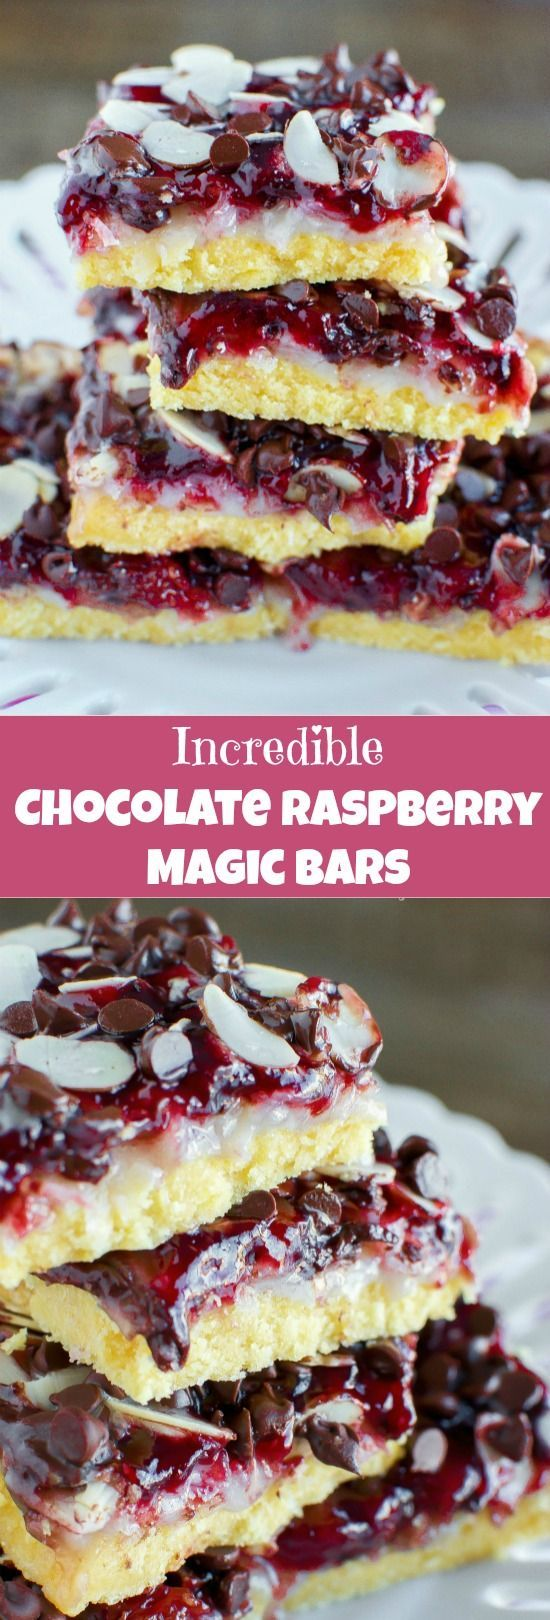 Seriously. INCREDIBLE Chocolate Raspberry Magic Bars!